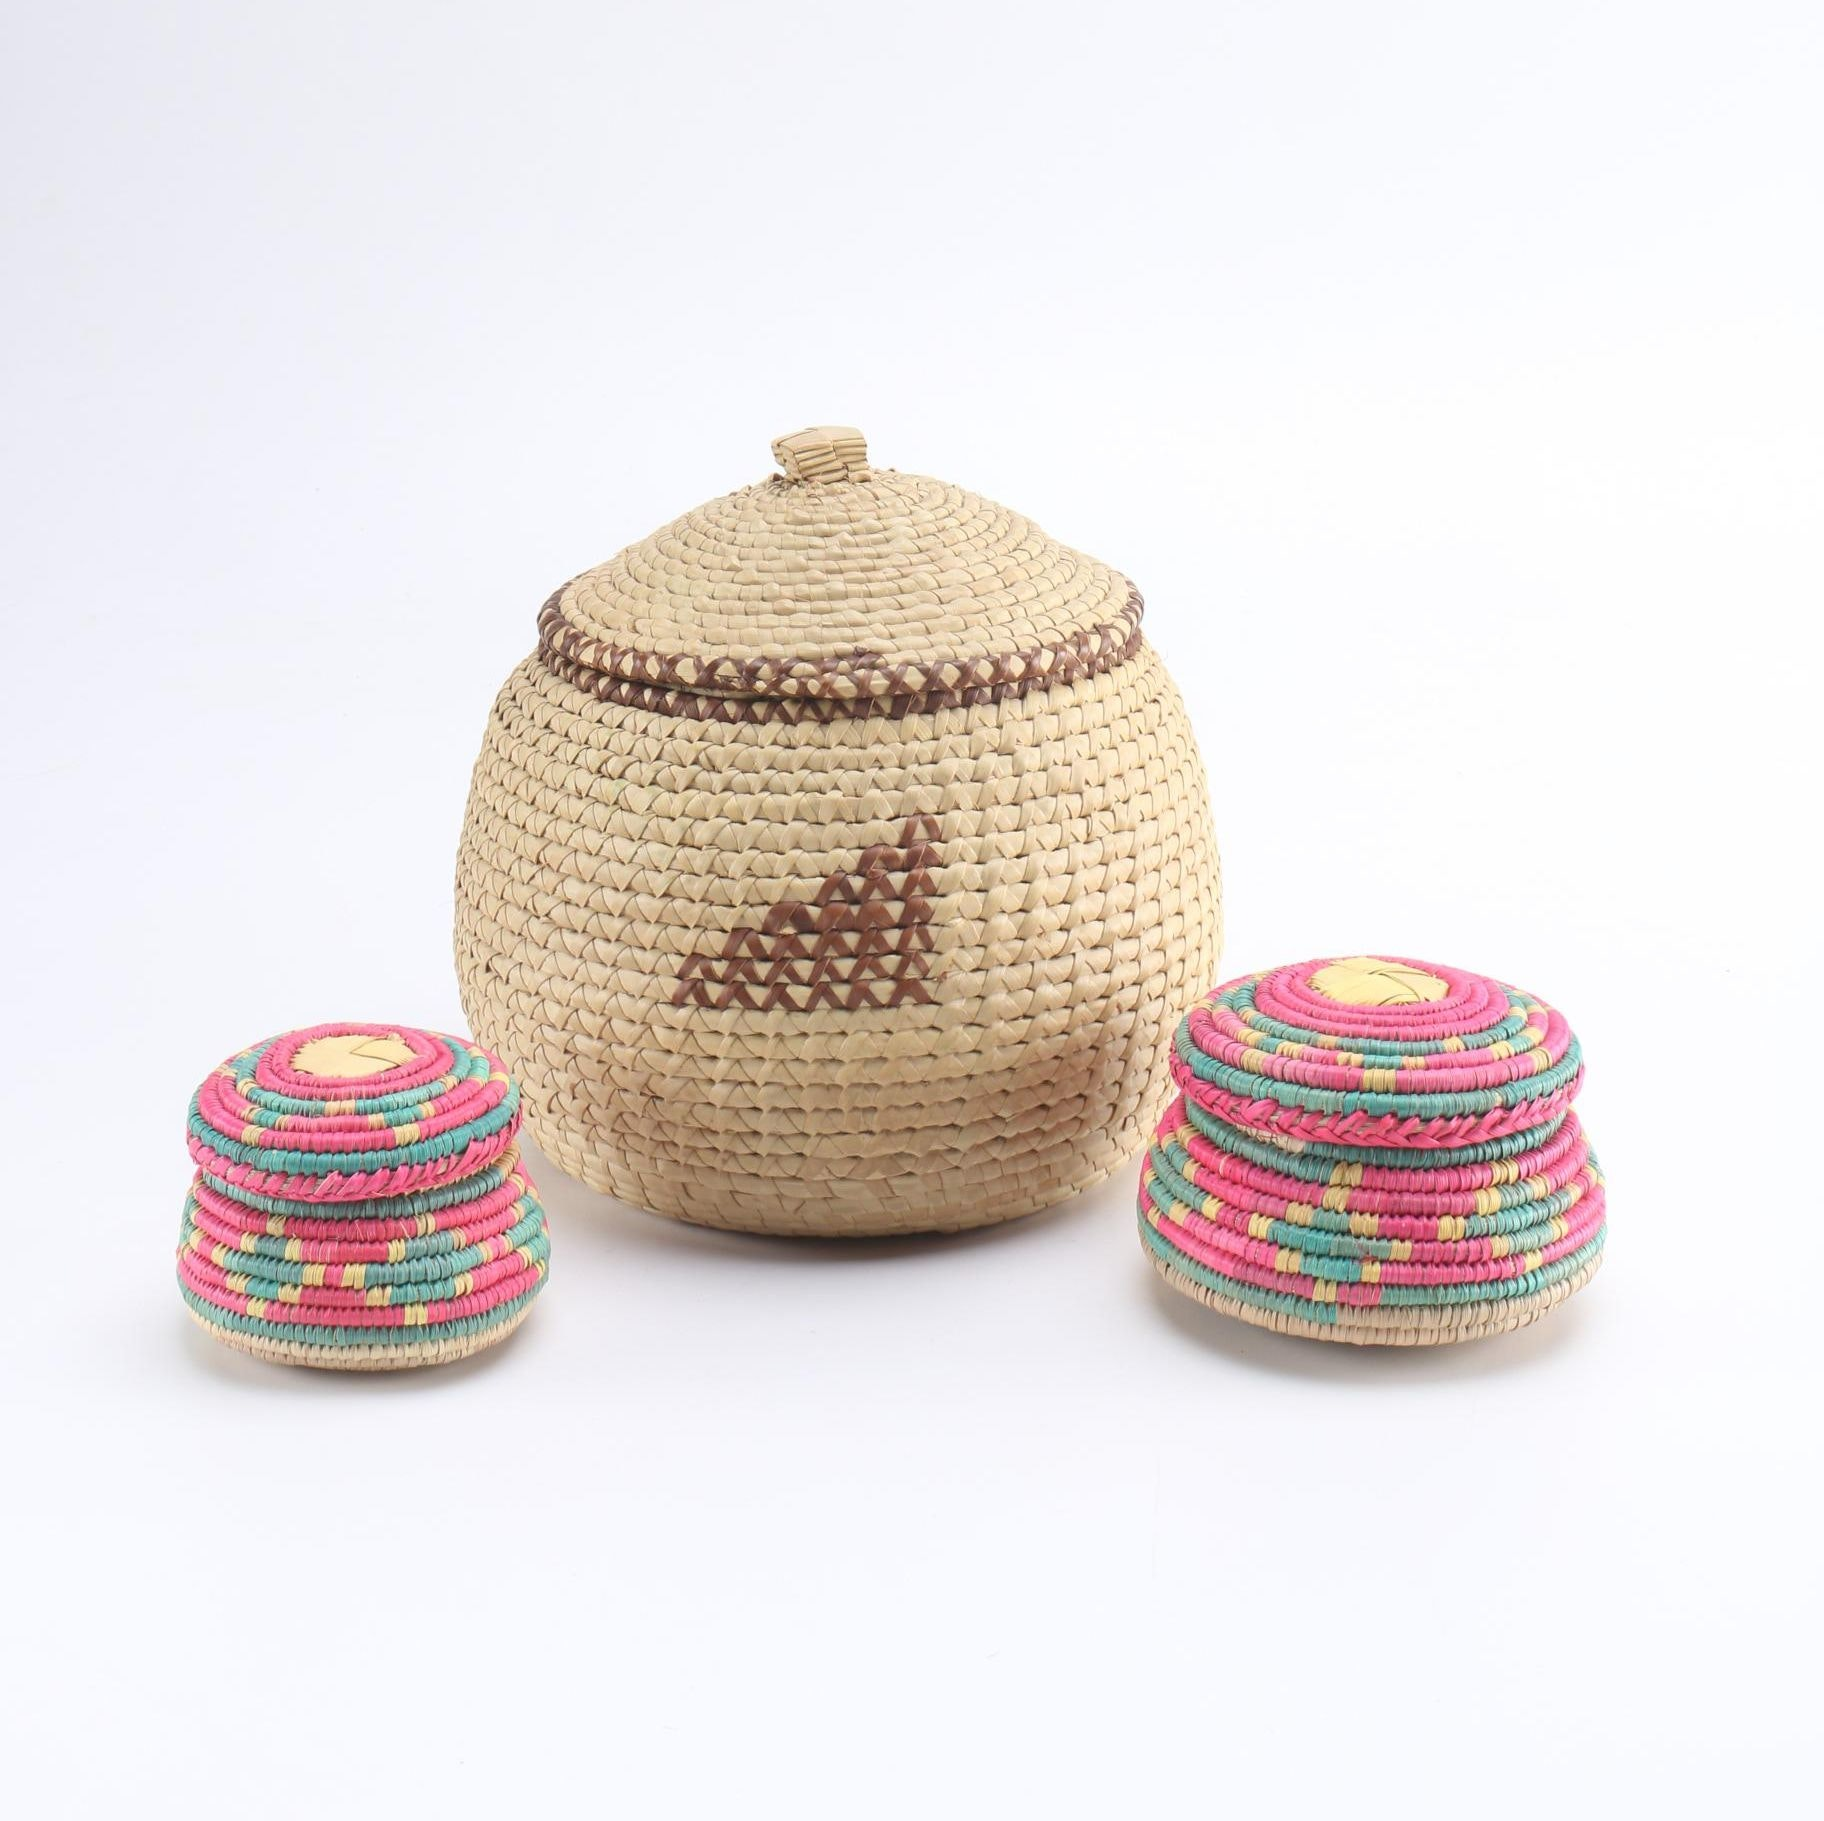 Selection of African Inspired Woven Baskets